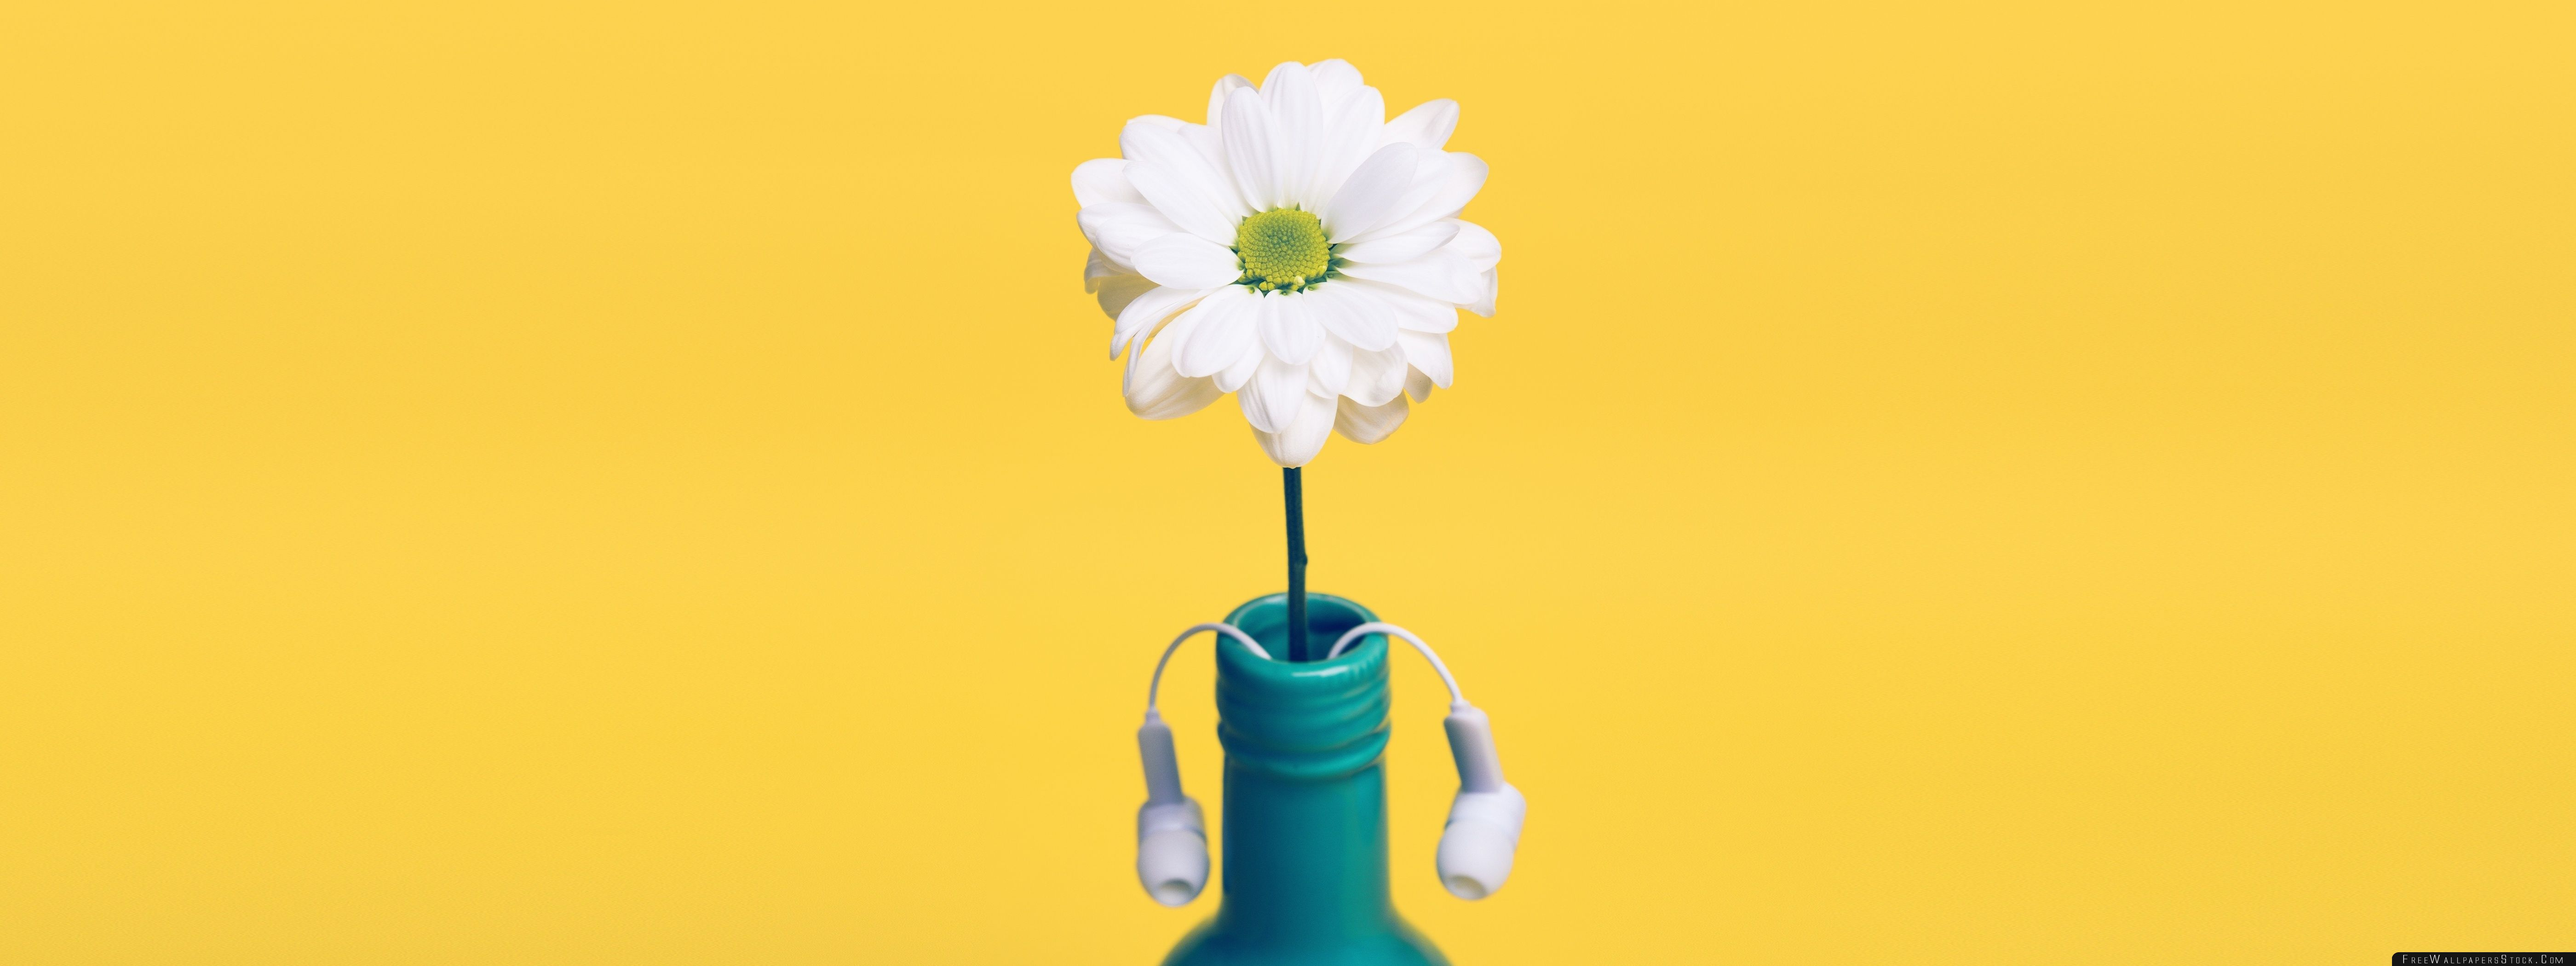 Download Free Wallpaper White Daisy   Blue Bottle Yellow Background